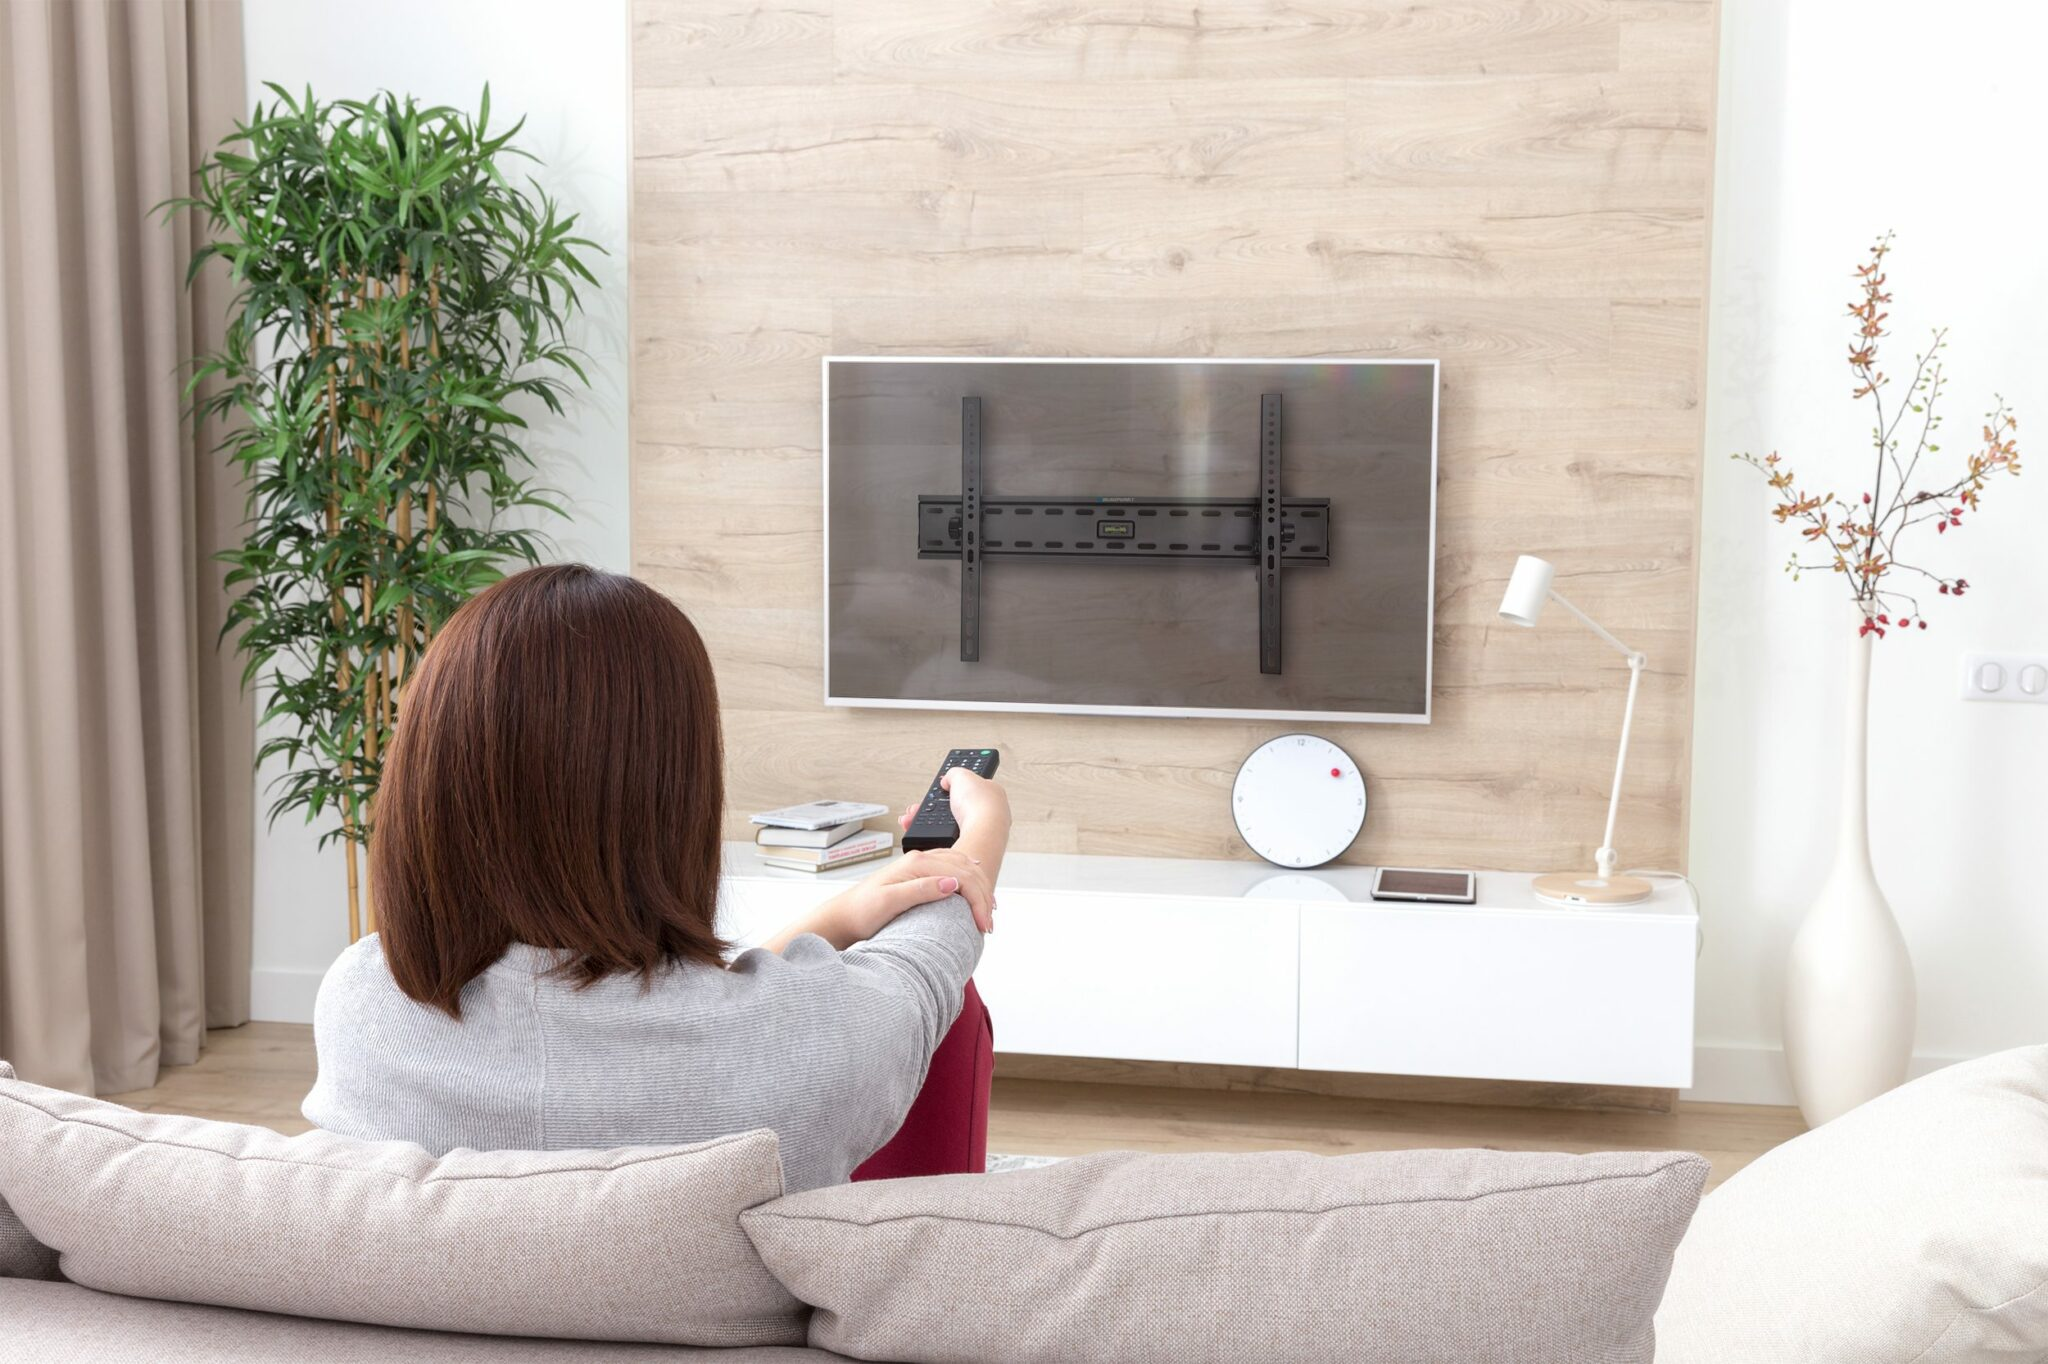 a Techvisionelectronics TV mount